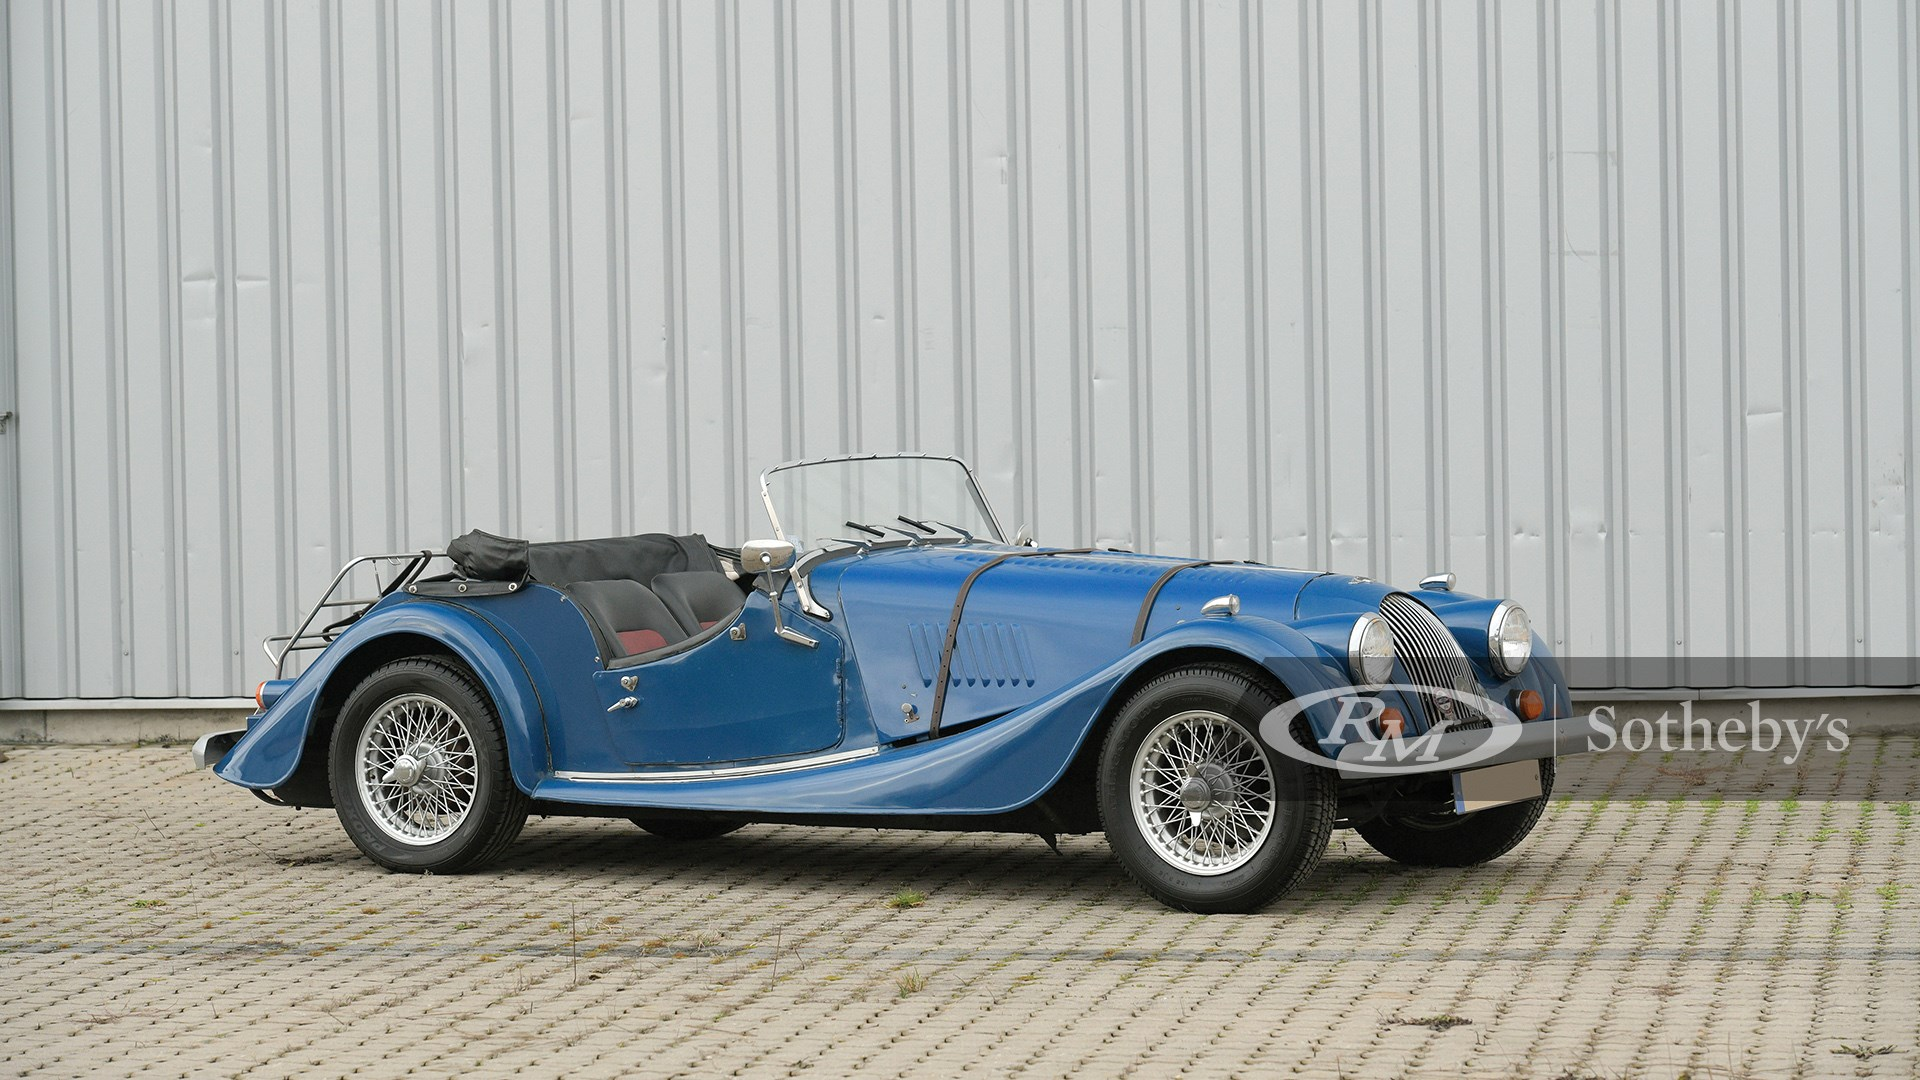 The European Sale Featuring The Petitjean Collection, 1980 Morgan 4/4 1600